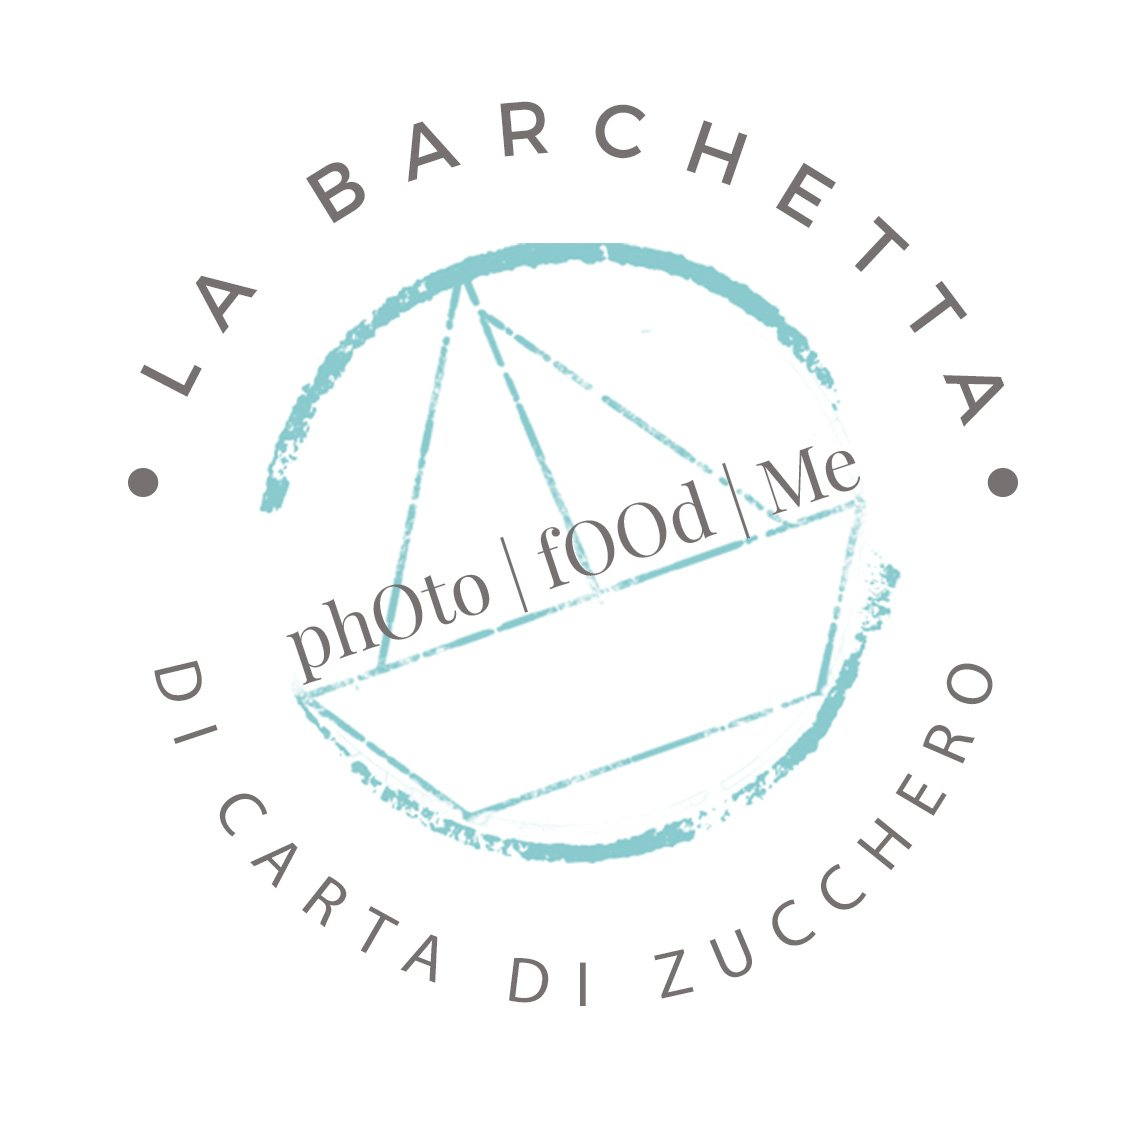 Food Blog La Barchetta